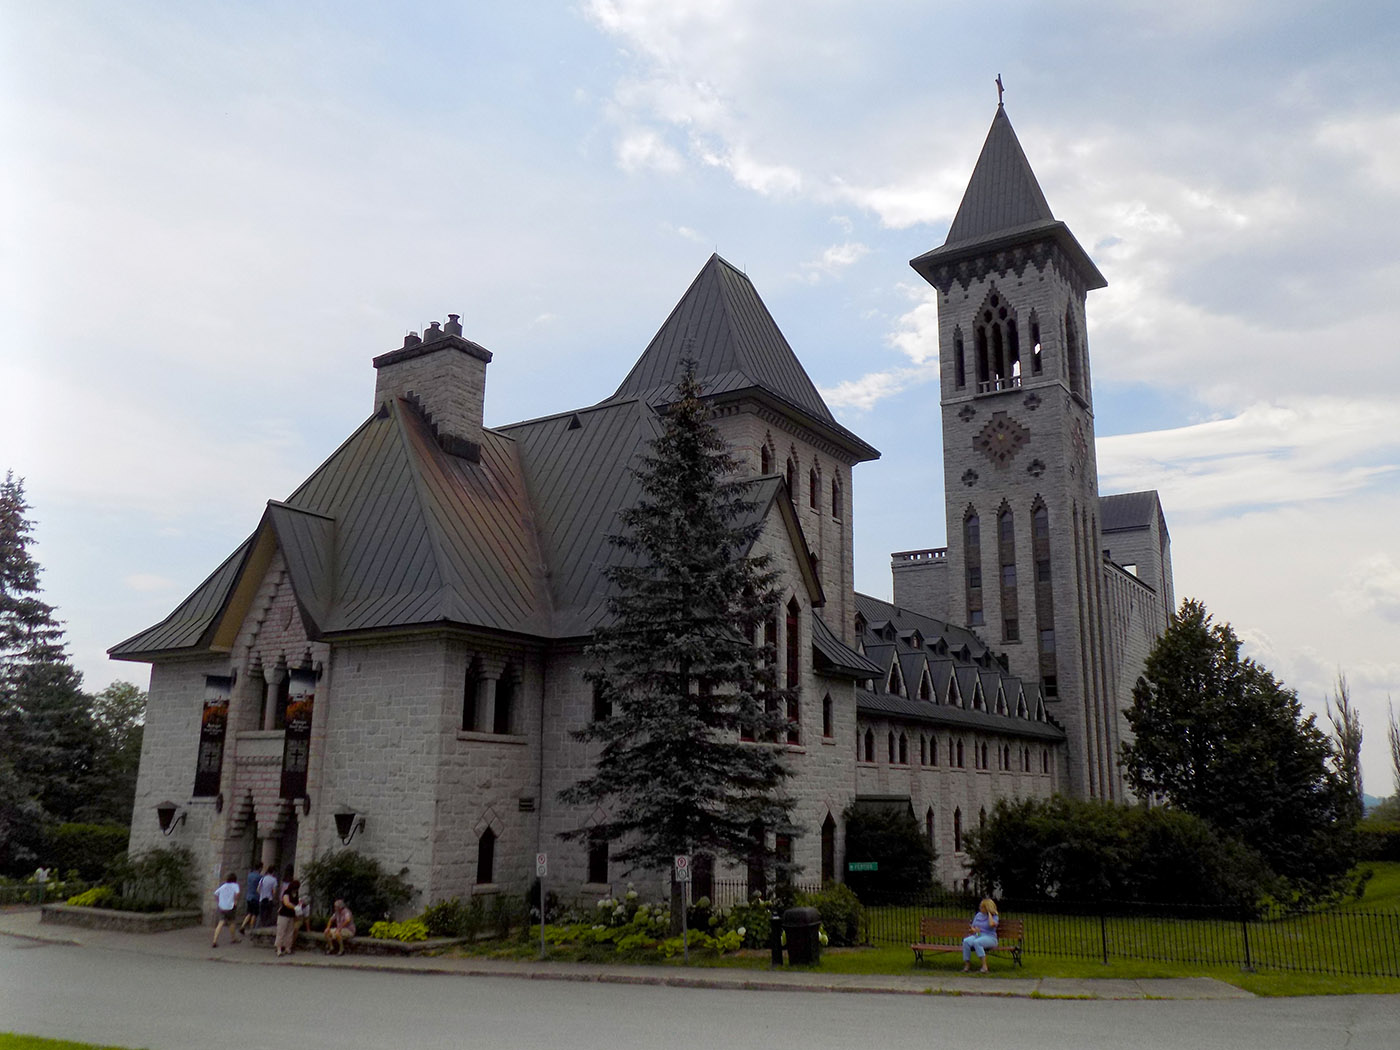 The front of the main abbey building at St. Benoit du Lac. Photo: James Morgan